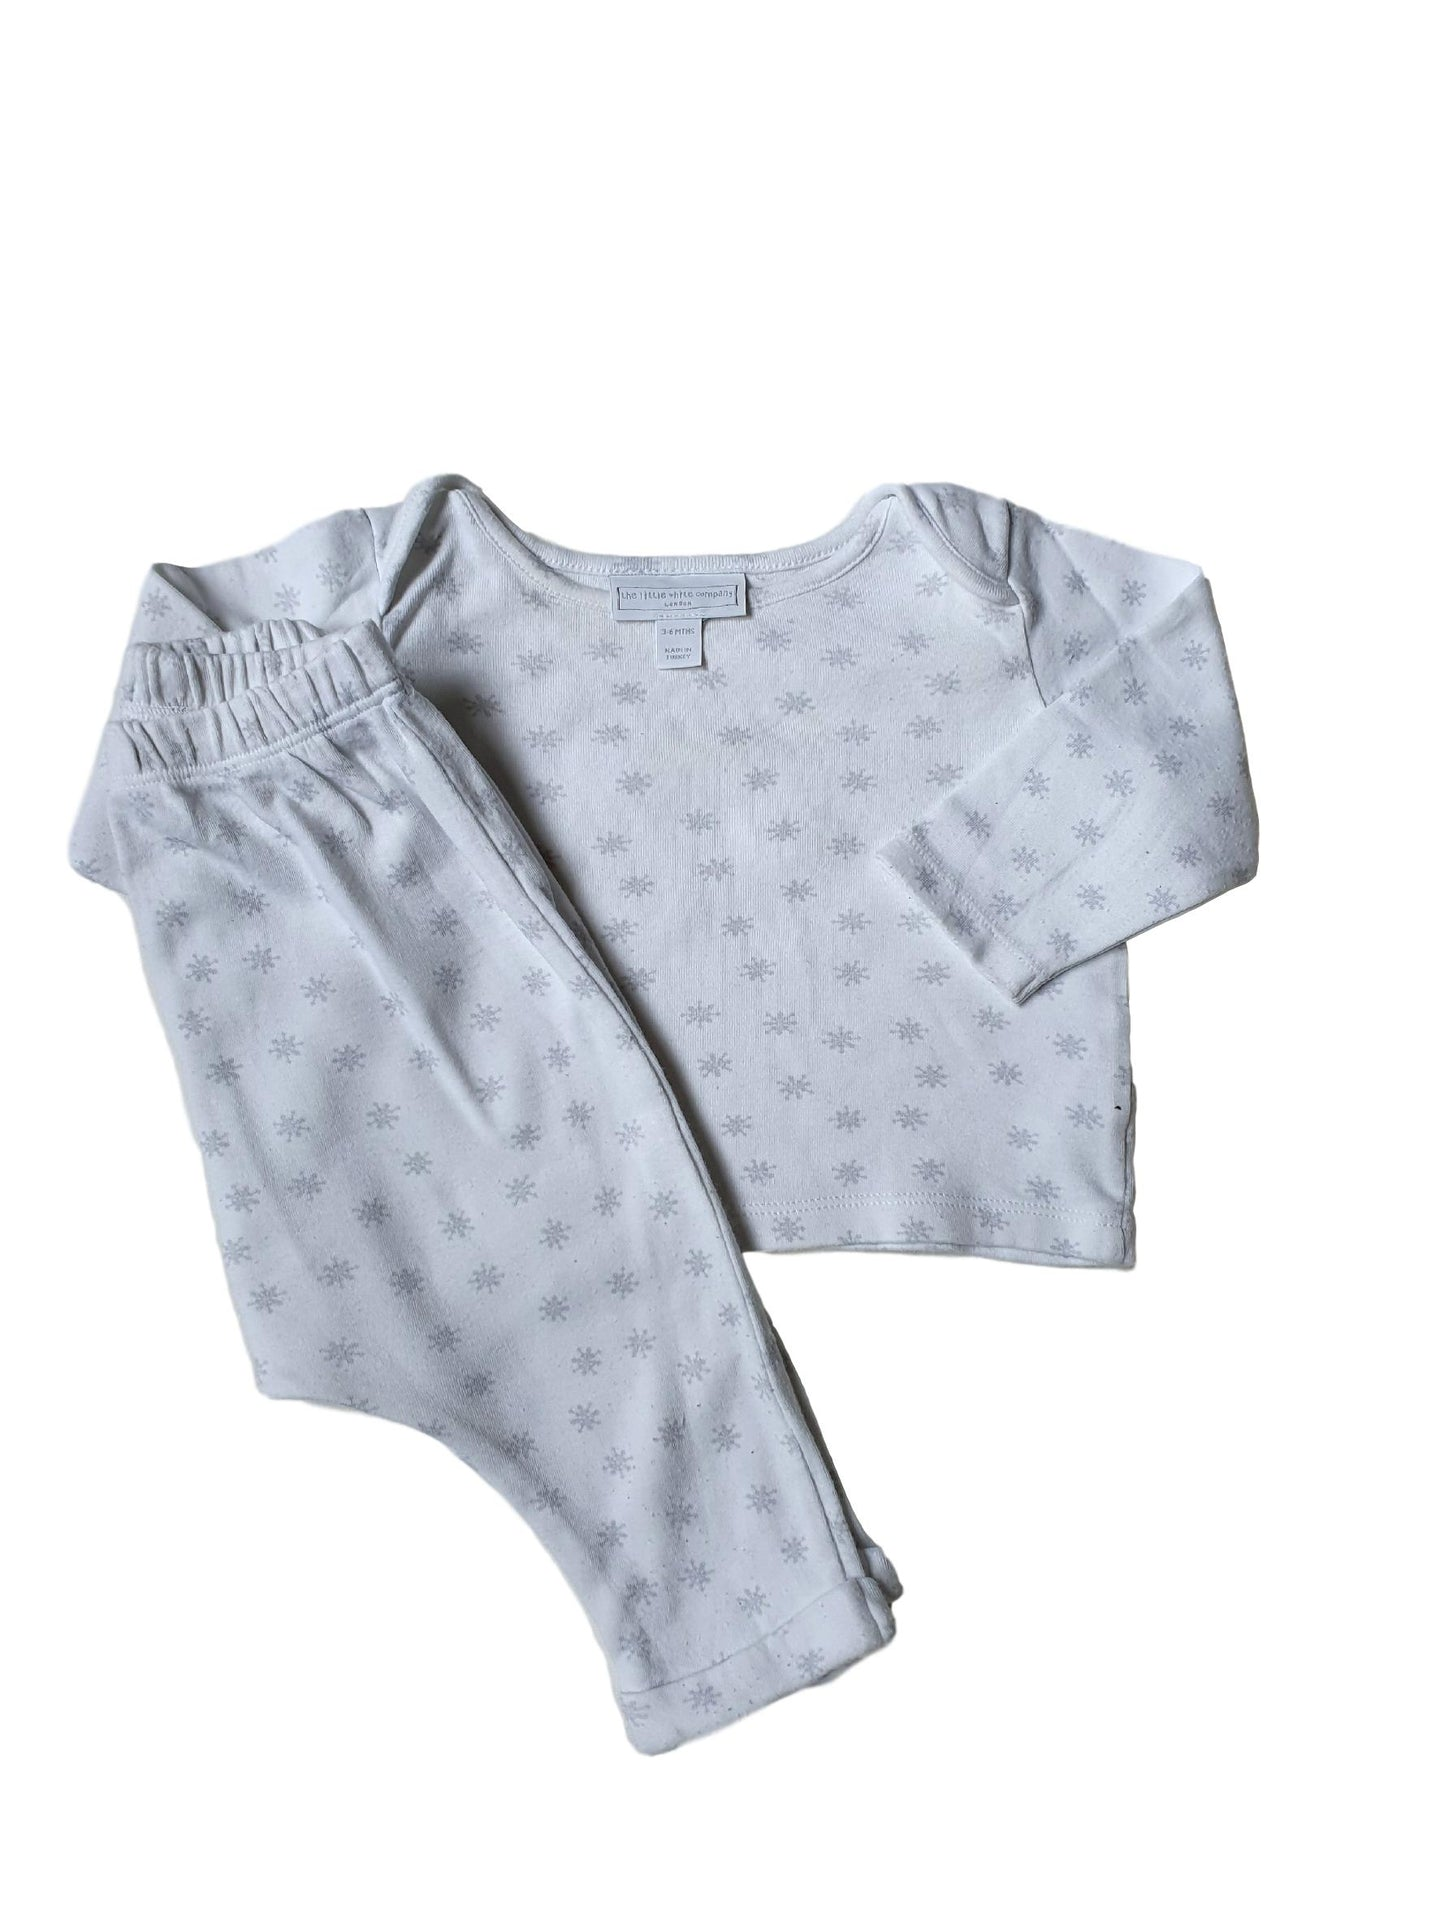 THE LITTLE WHITE COMPANY boy or girl set 3-6m